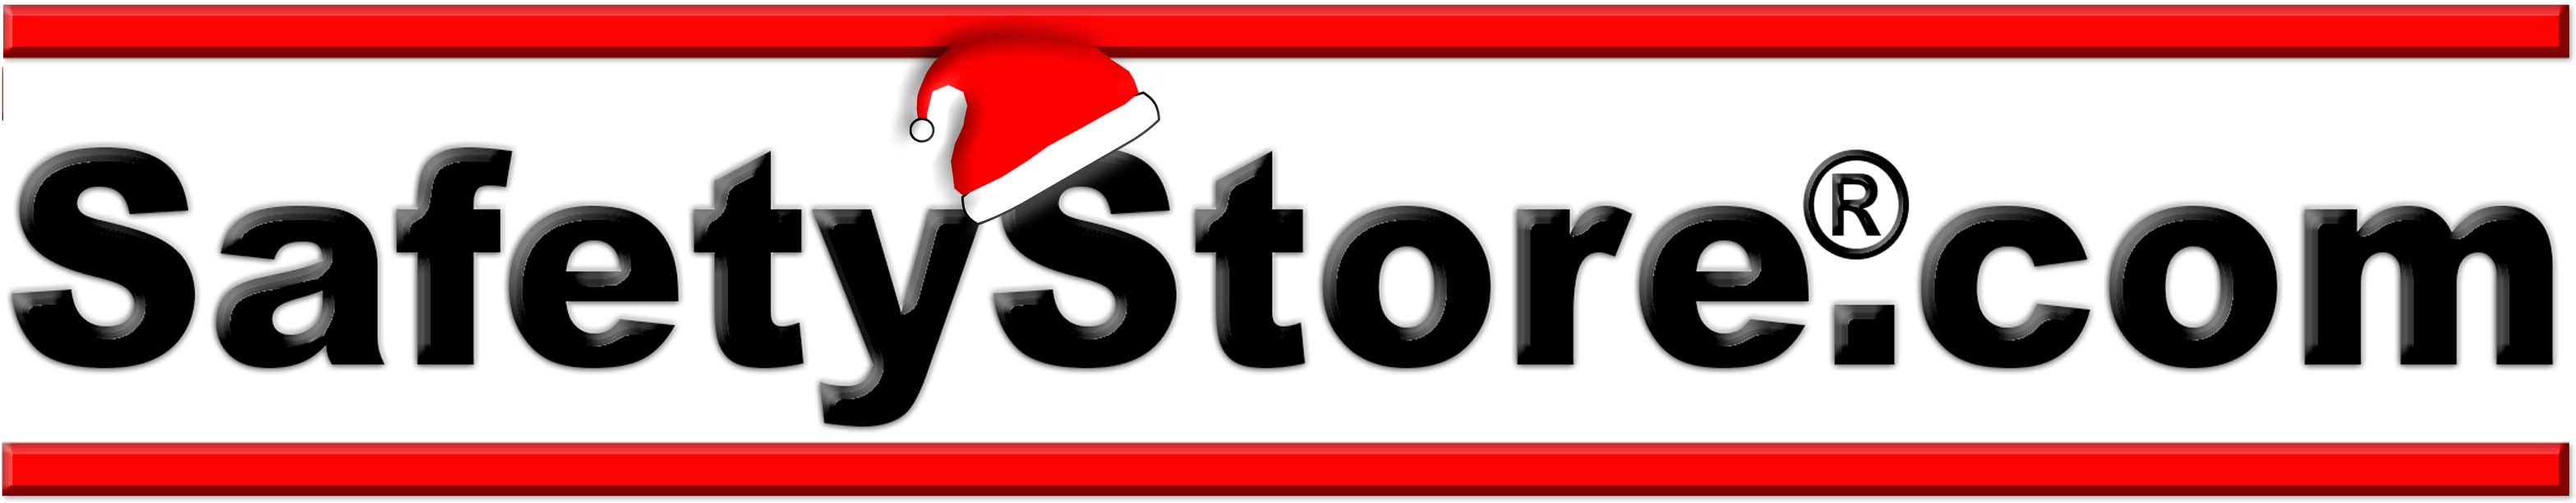 Happy holidays from safety store main logo